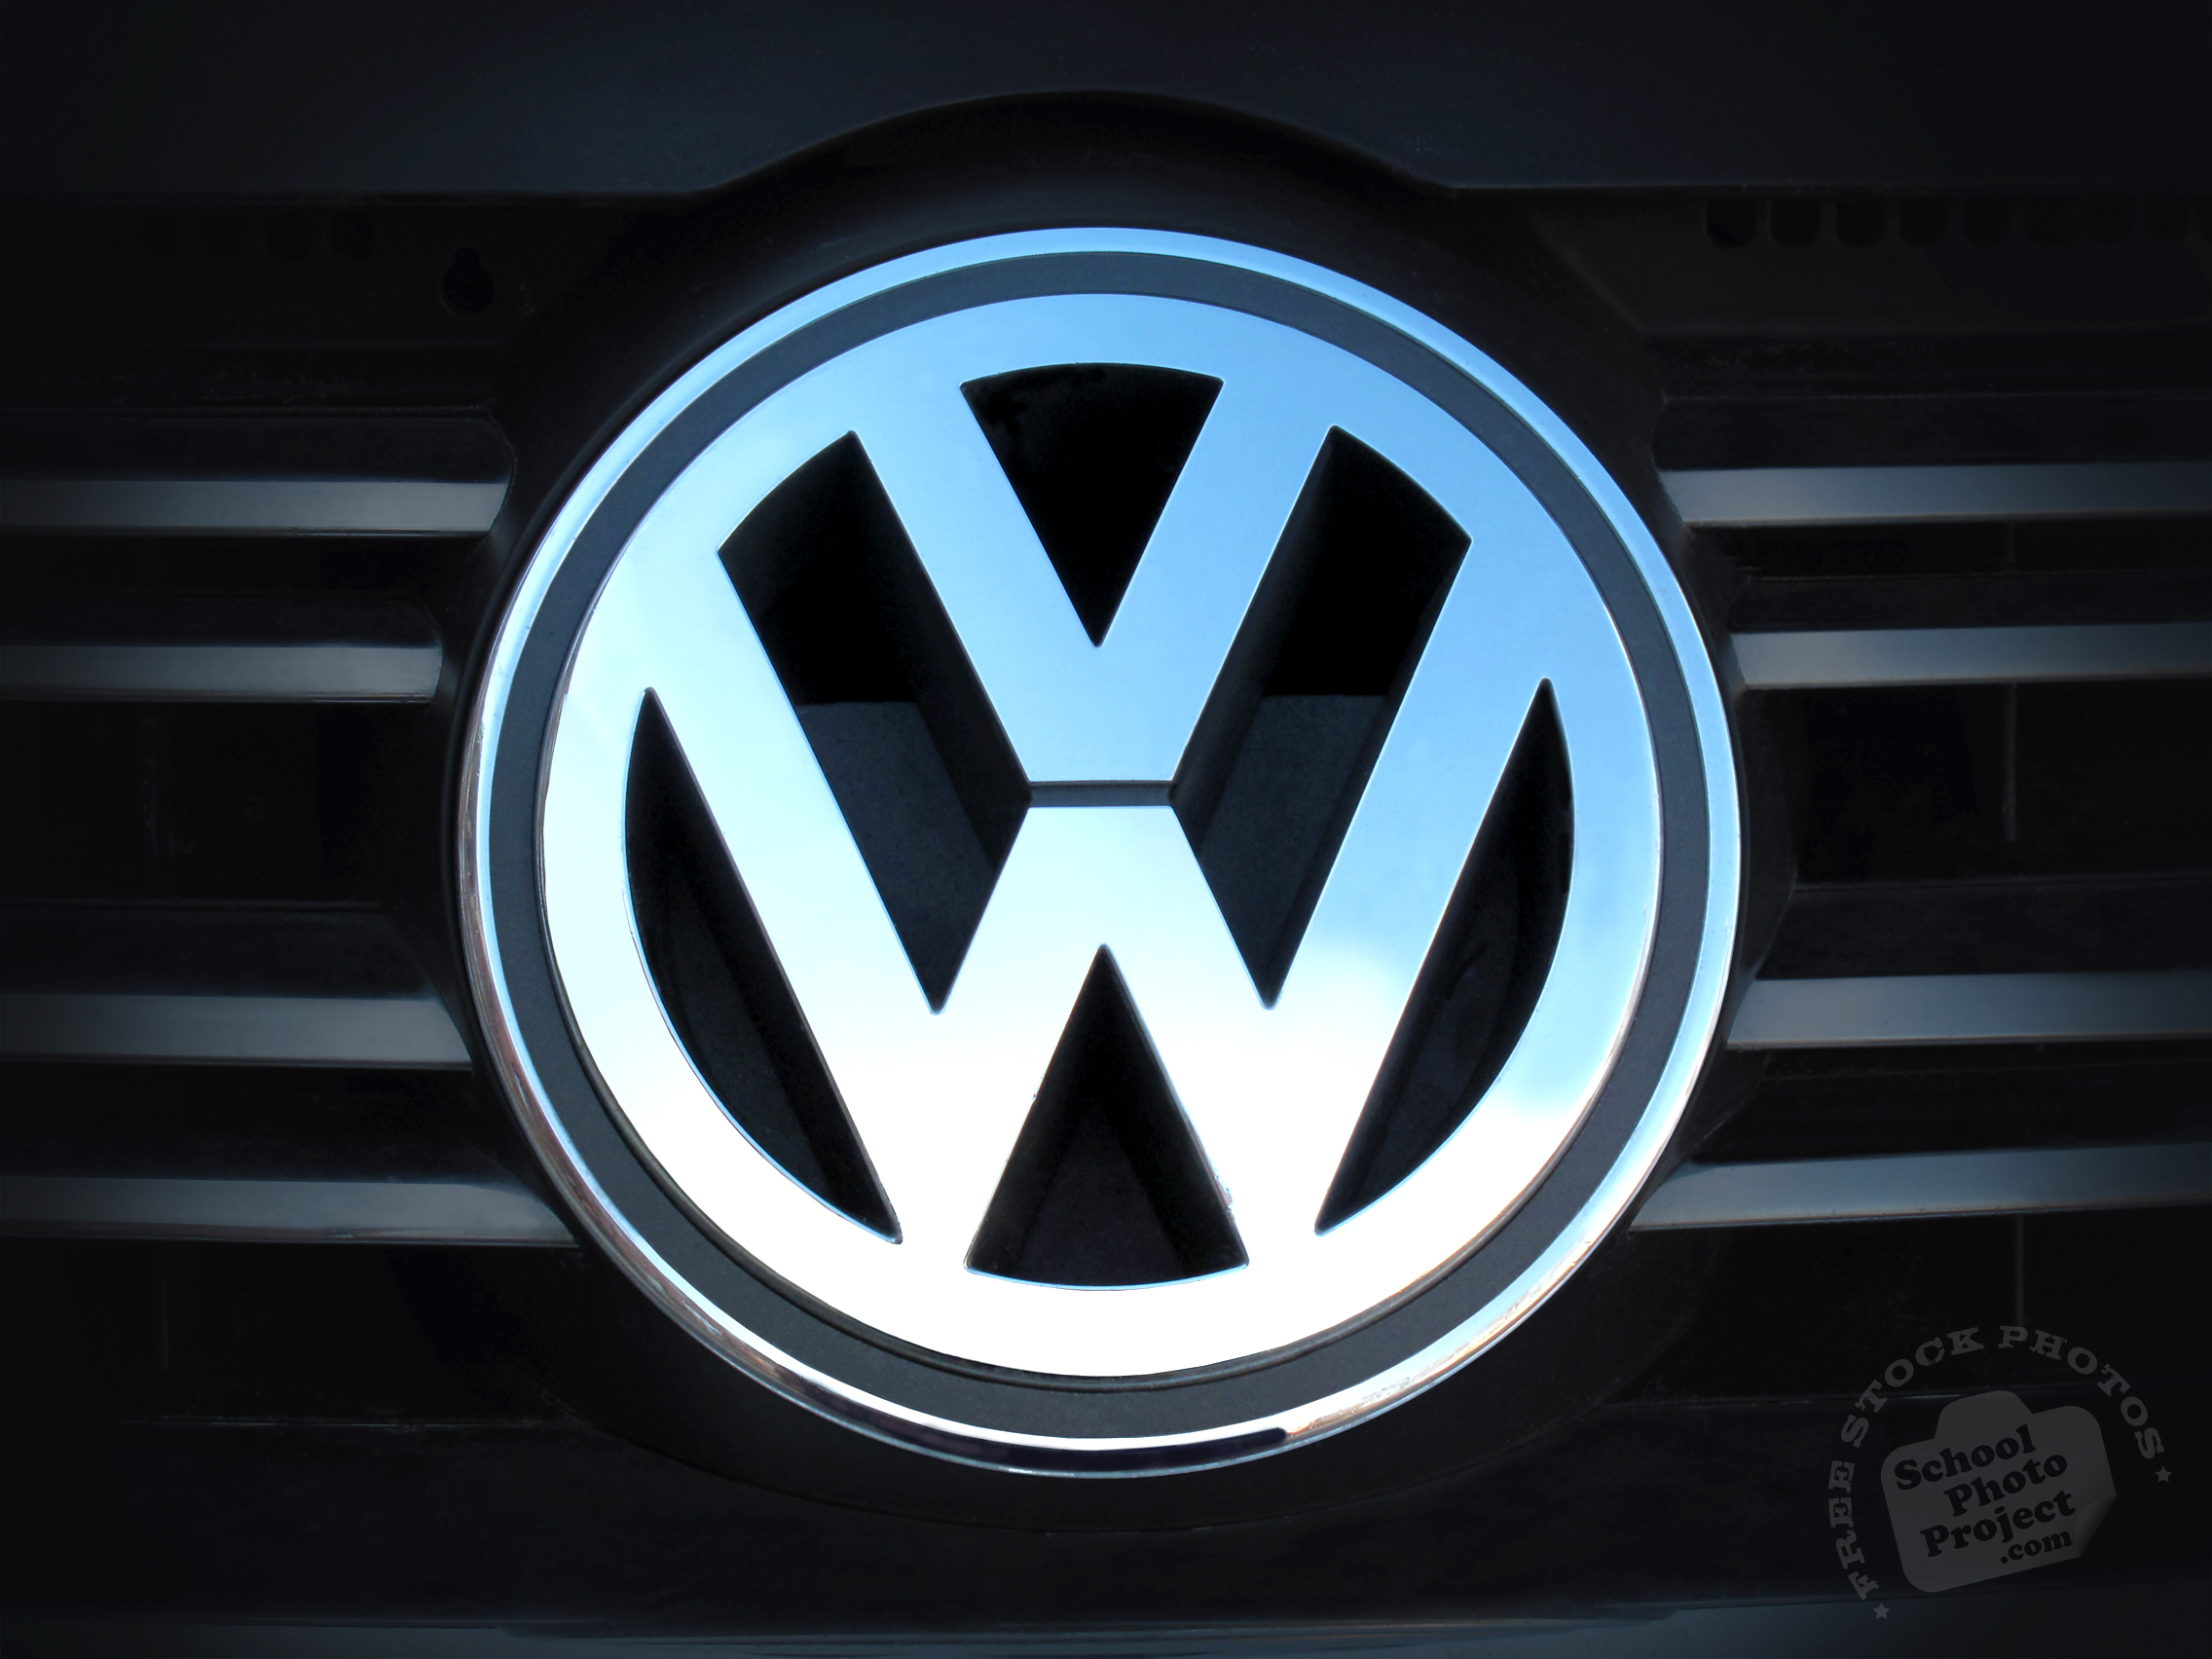 VW Logo, FREE Stock Photo, Image, Picture: Volkswagen Logo ...